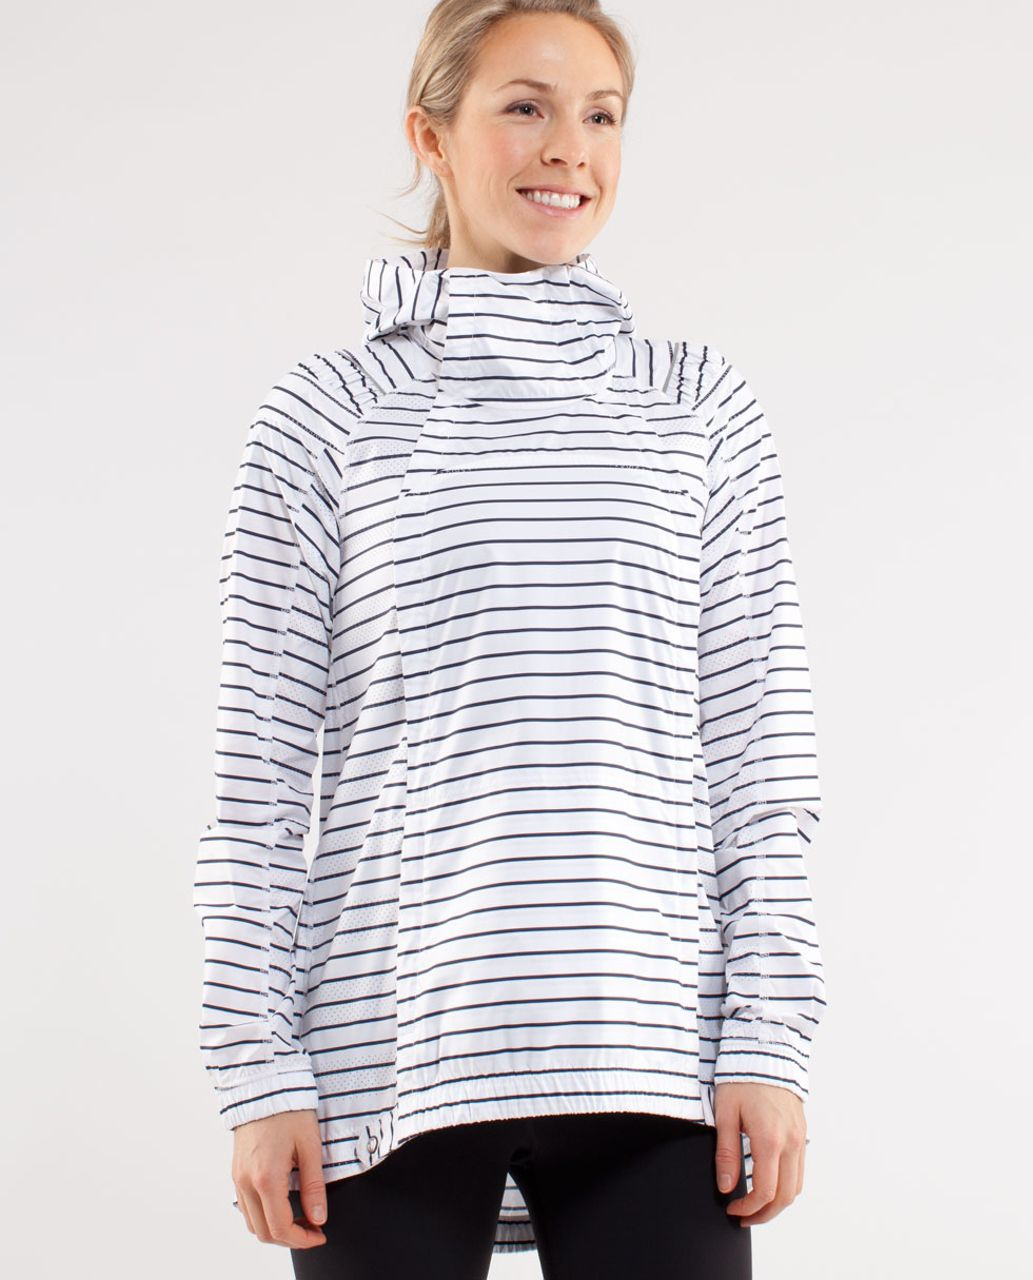 Lululemon Pack and Go Pullover - Quiet Stripe Printed White Deep Indigo